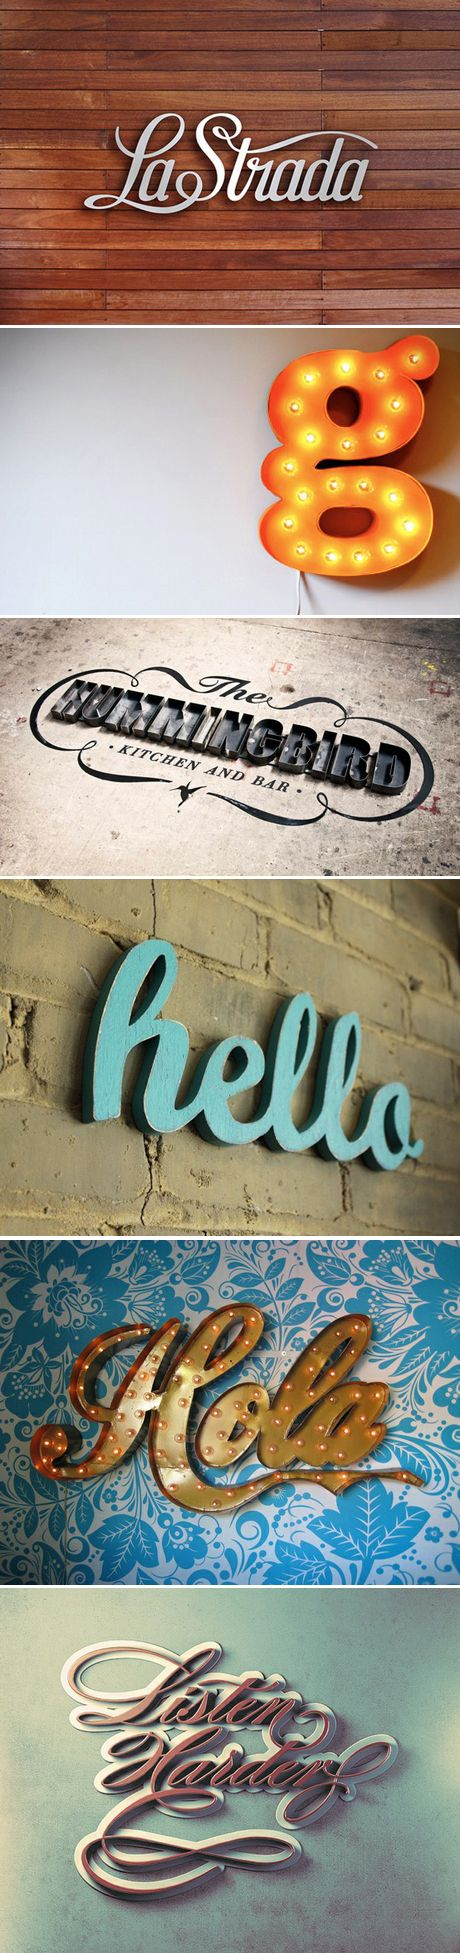 pinterest.com/fra411 #typographic - Some random metal letters